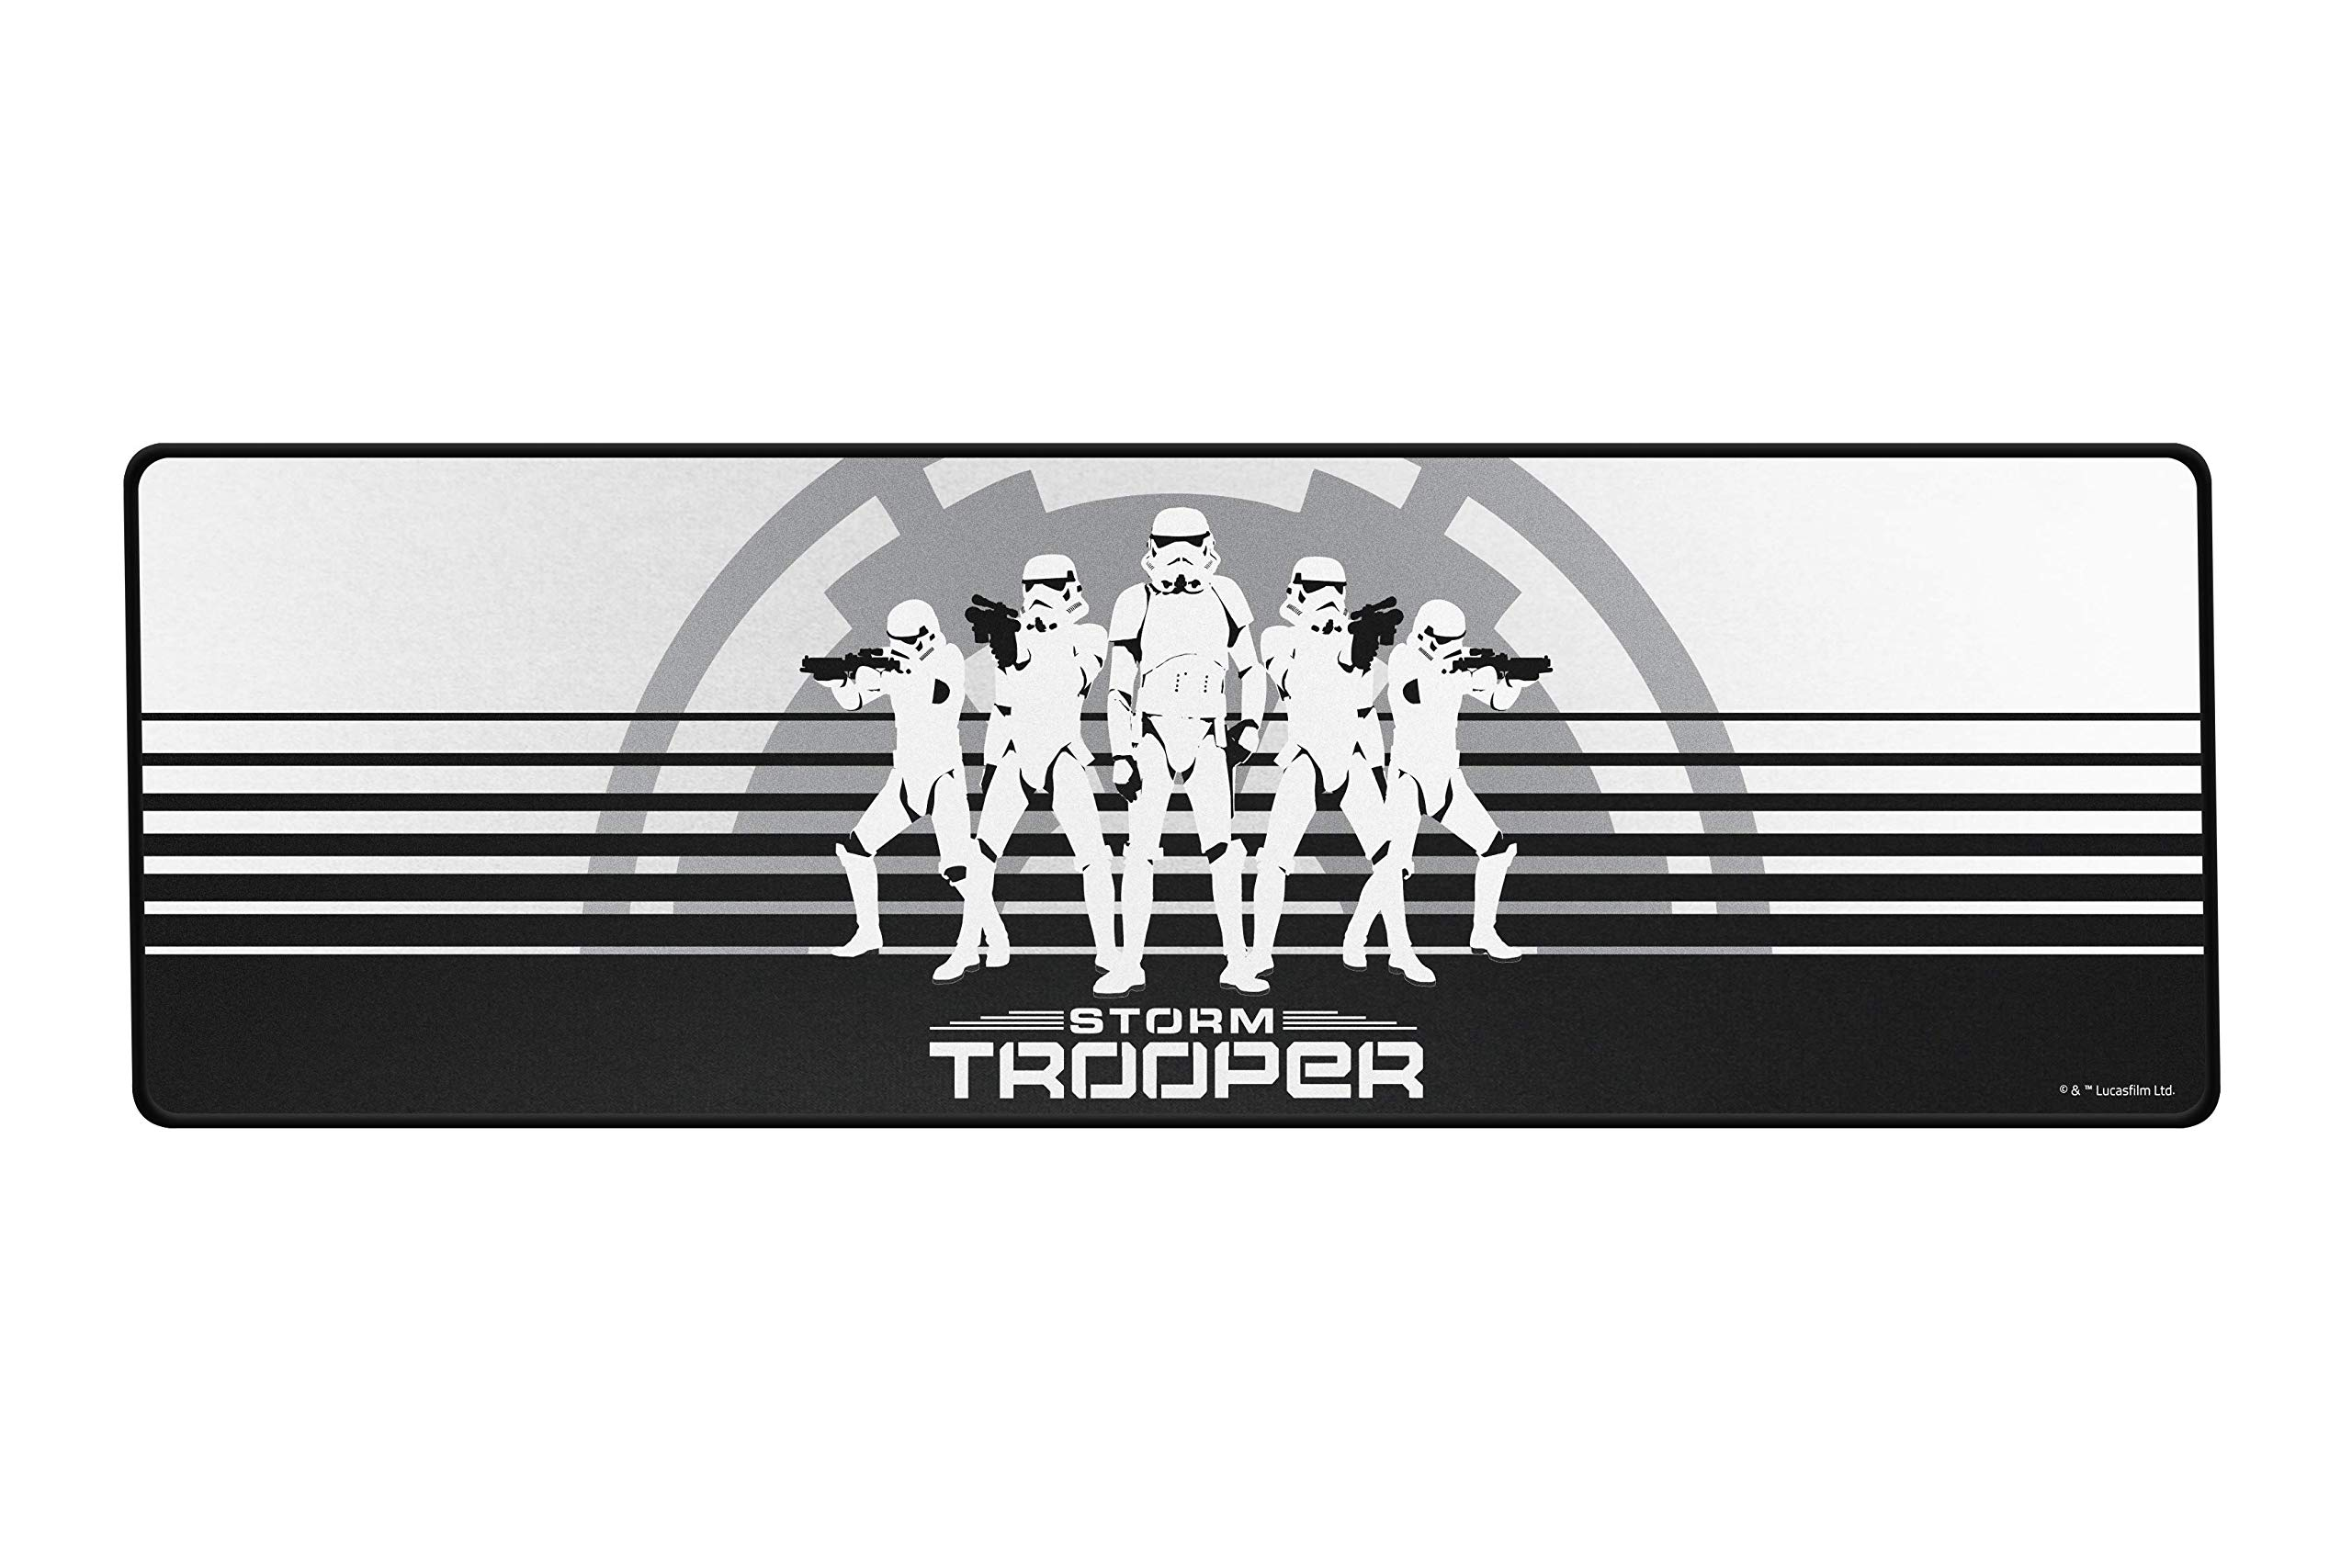 Razer Goliathus Speed (Extended) Gaming Mousepad: Smooth Gaming Mat - Anti-Slip Rubber Base - Portable Cloth Design - Anti-Fraying Stitched Frame - Stormtrooper Limited Edition by Razer